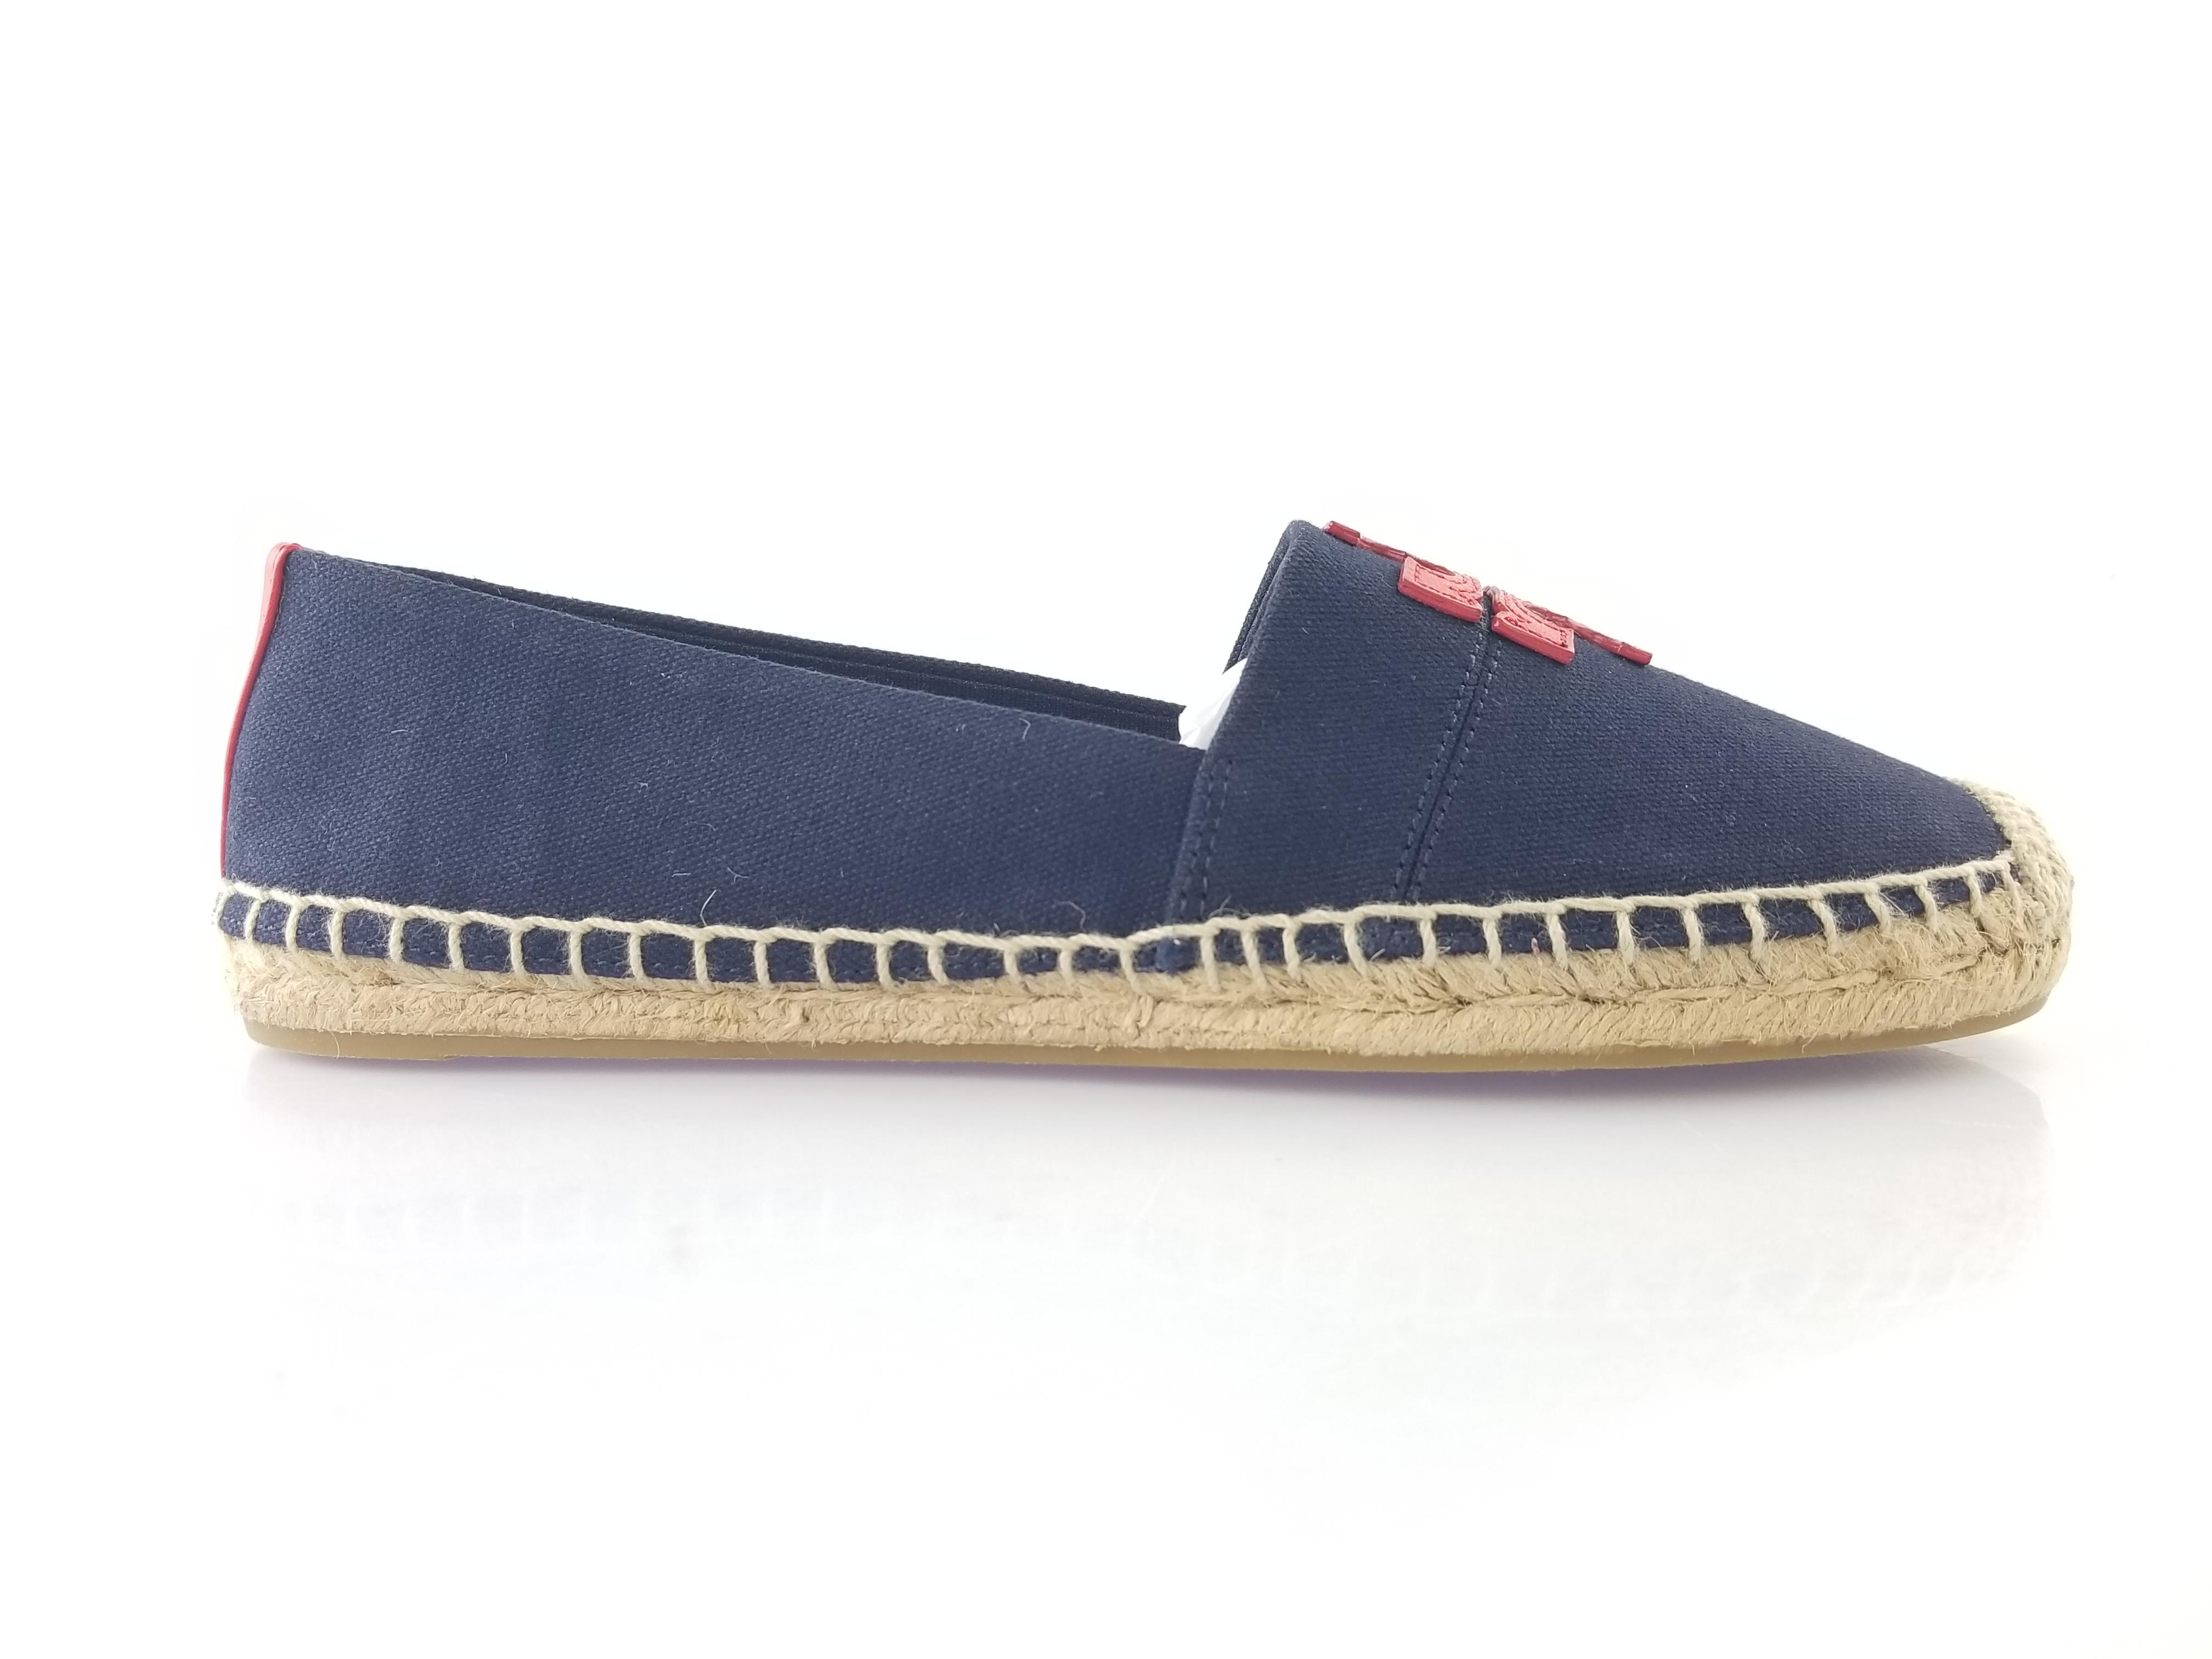 a785583f6c80 Tory Burch Perfect Navy and Nautical Red Weston Canvas Calf 7.5 Espadrille  Flats Size US 7.5 Calf Regular (M